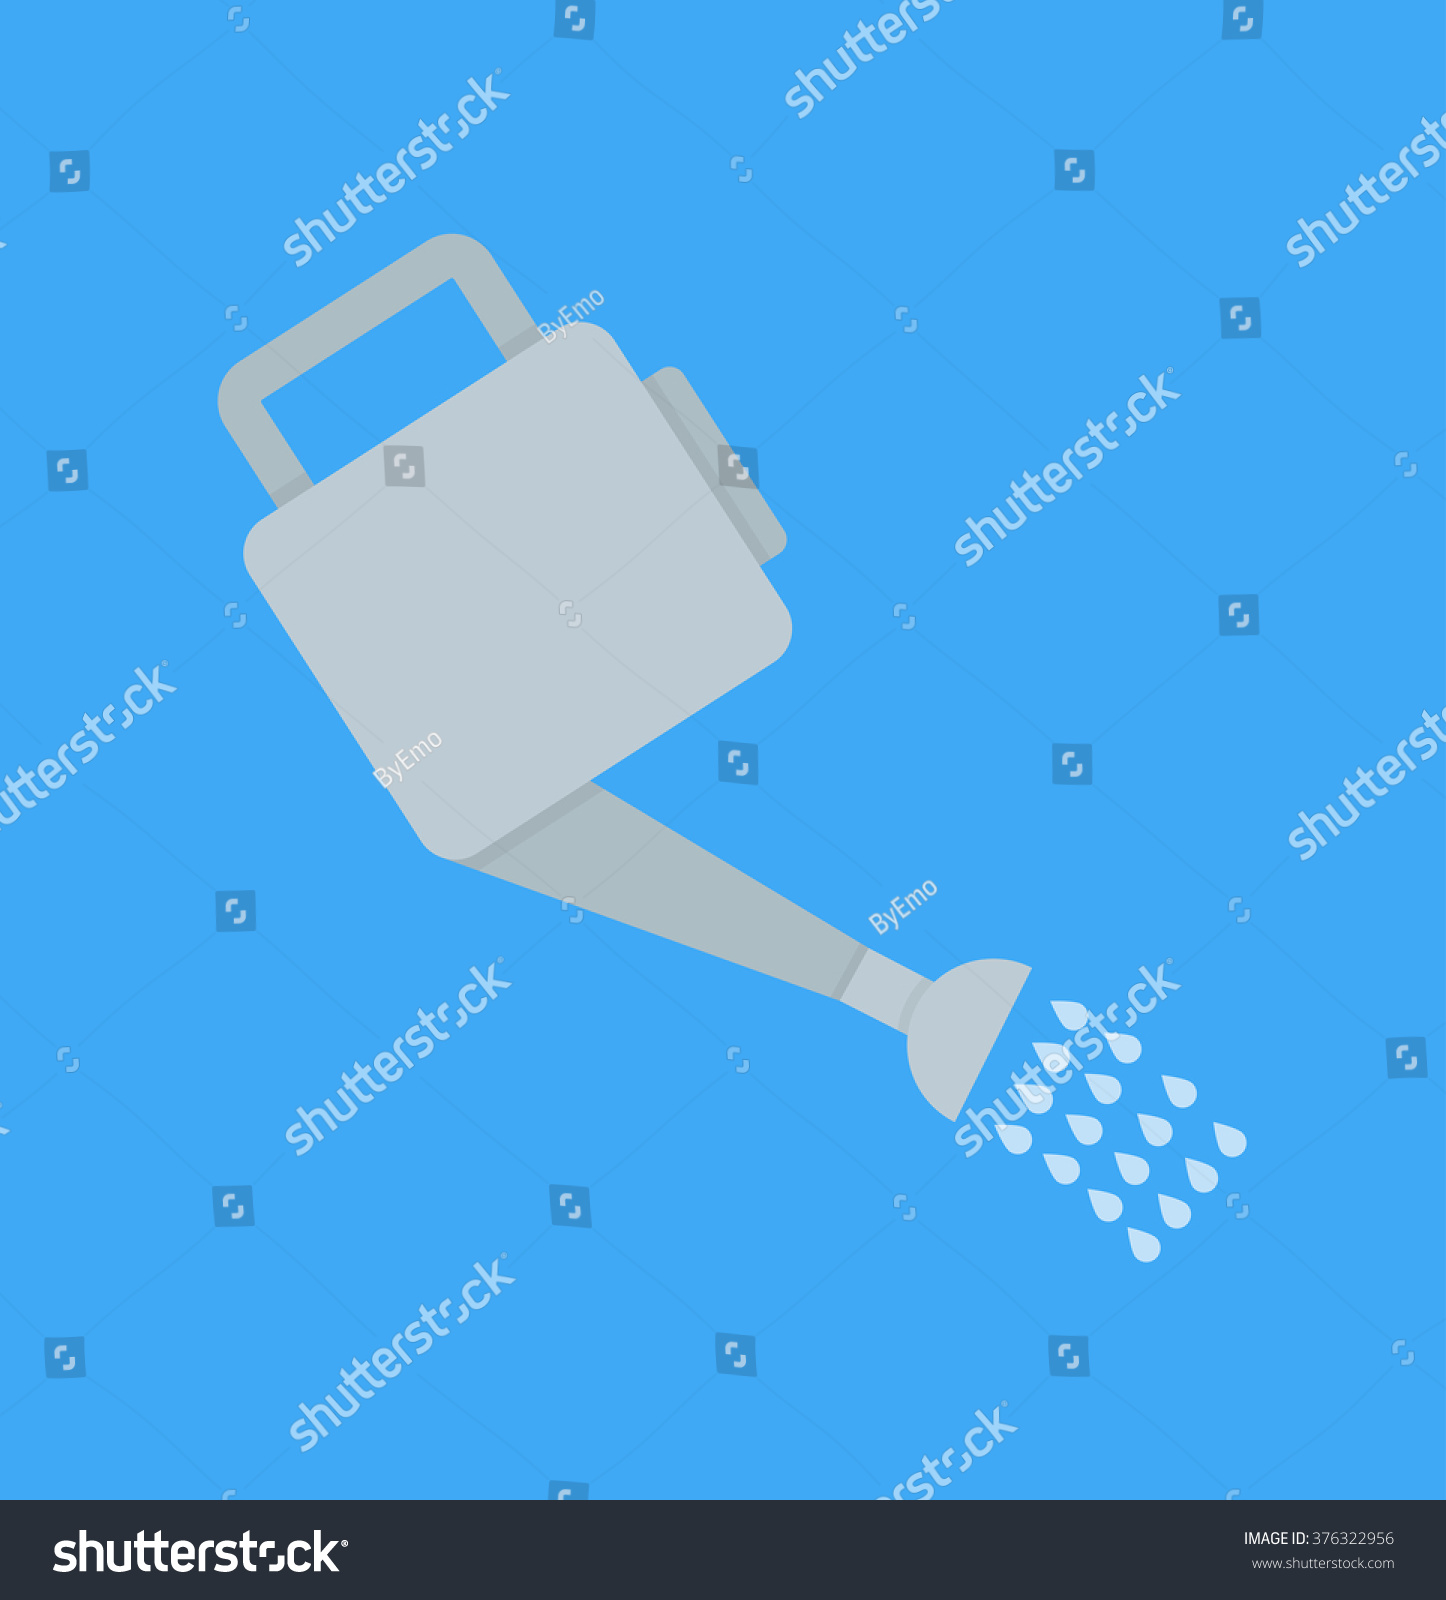 Watering Can Flat Design Stock Image Download Now